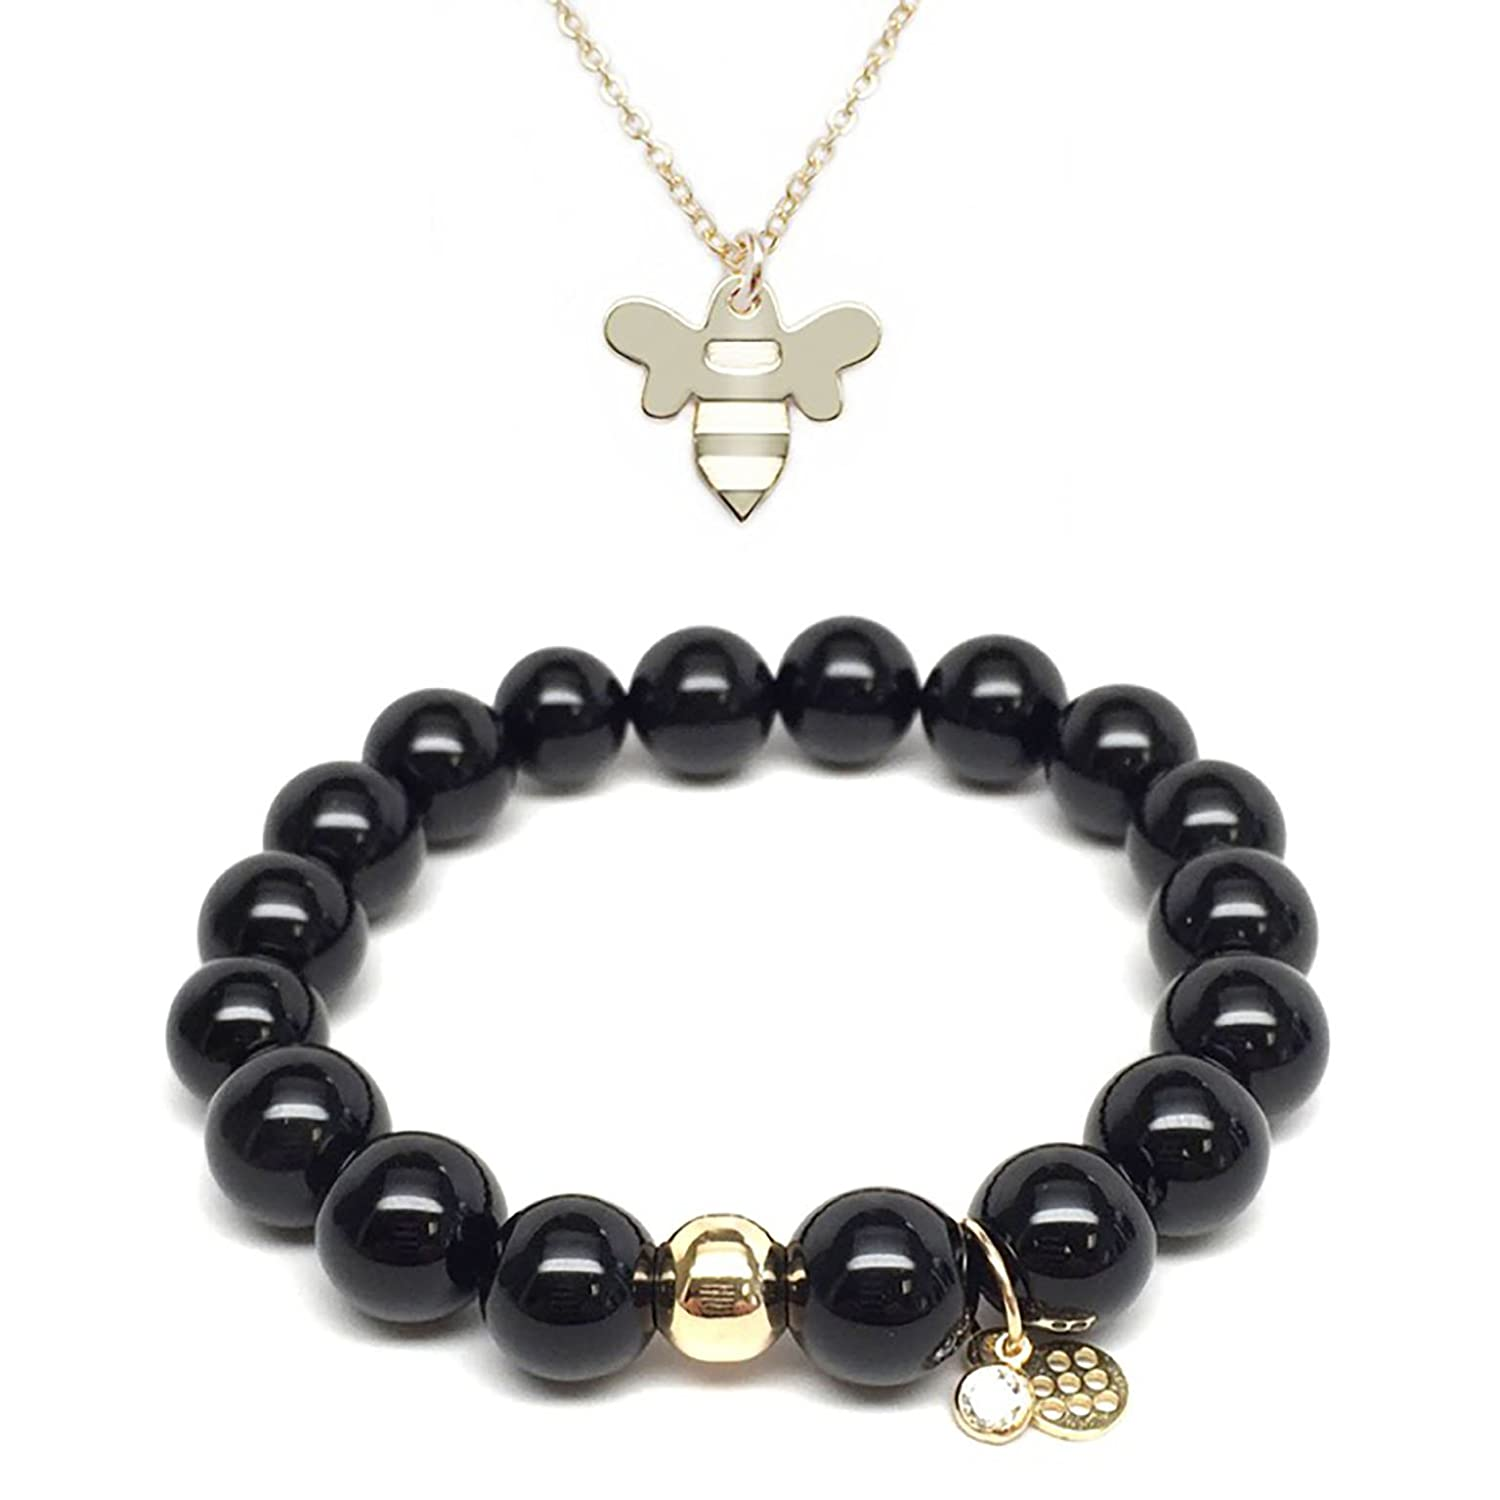 TFS Jewelry Set 10mm Black Onyx Emma 7 Gold Stretch Bracelet /& 12mm Bee Charm 16 Gold Necklace